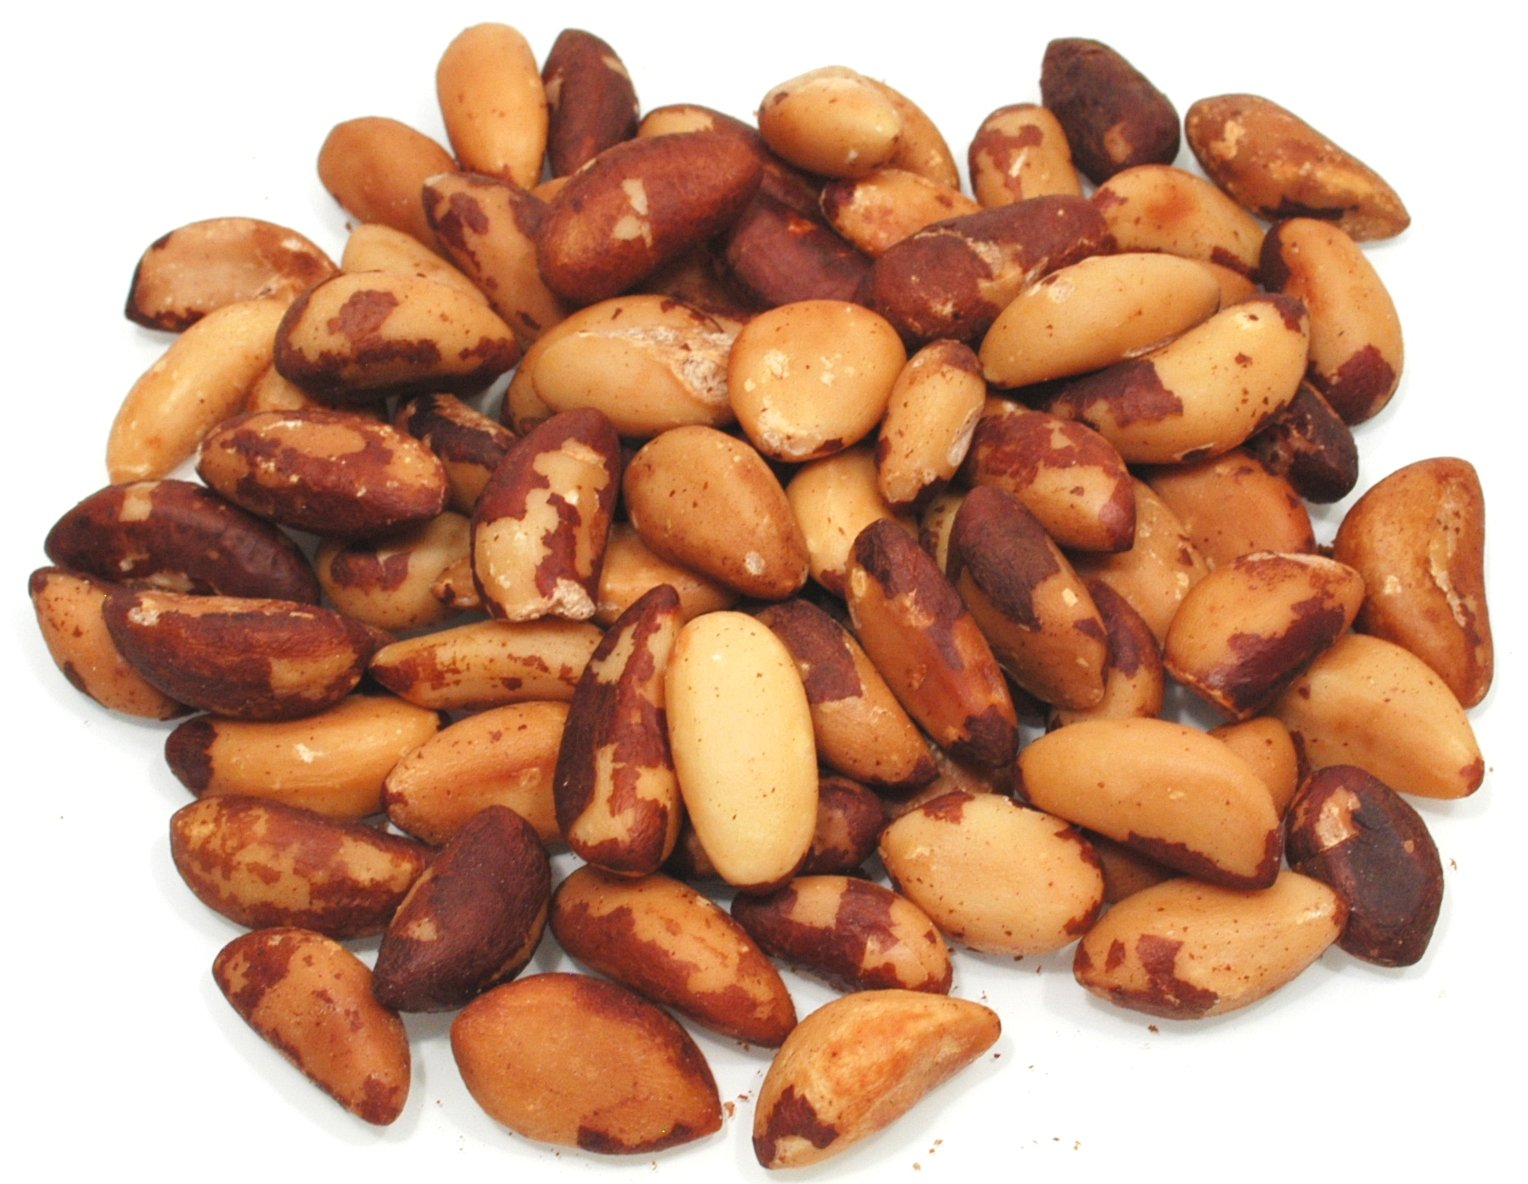 Weaver Nut Whole Brazil Nuts Roasted Unsalted (1 LB.)